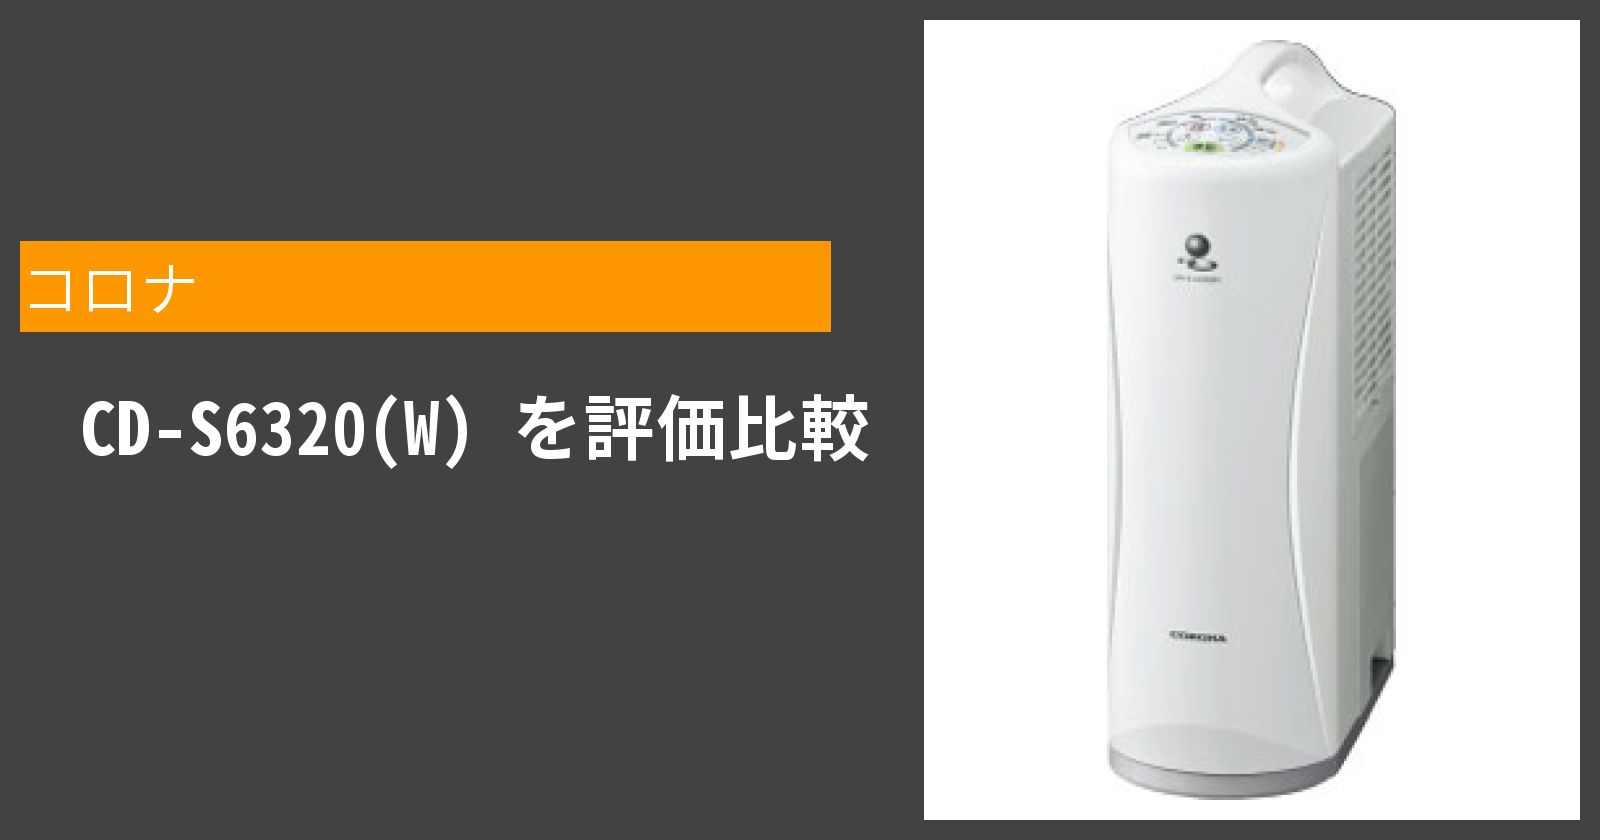 CD-S6320(W)を徹底評価